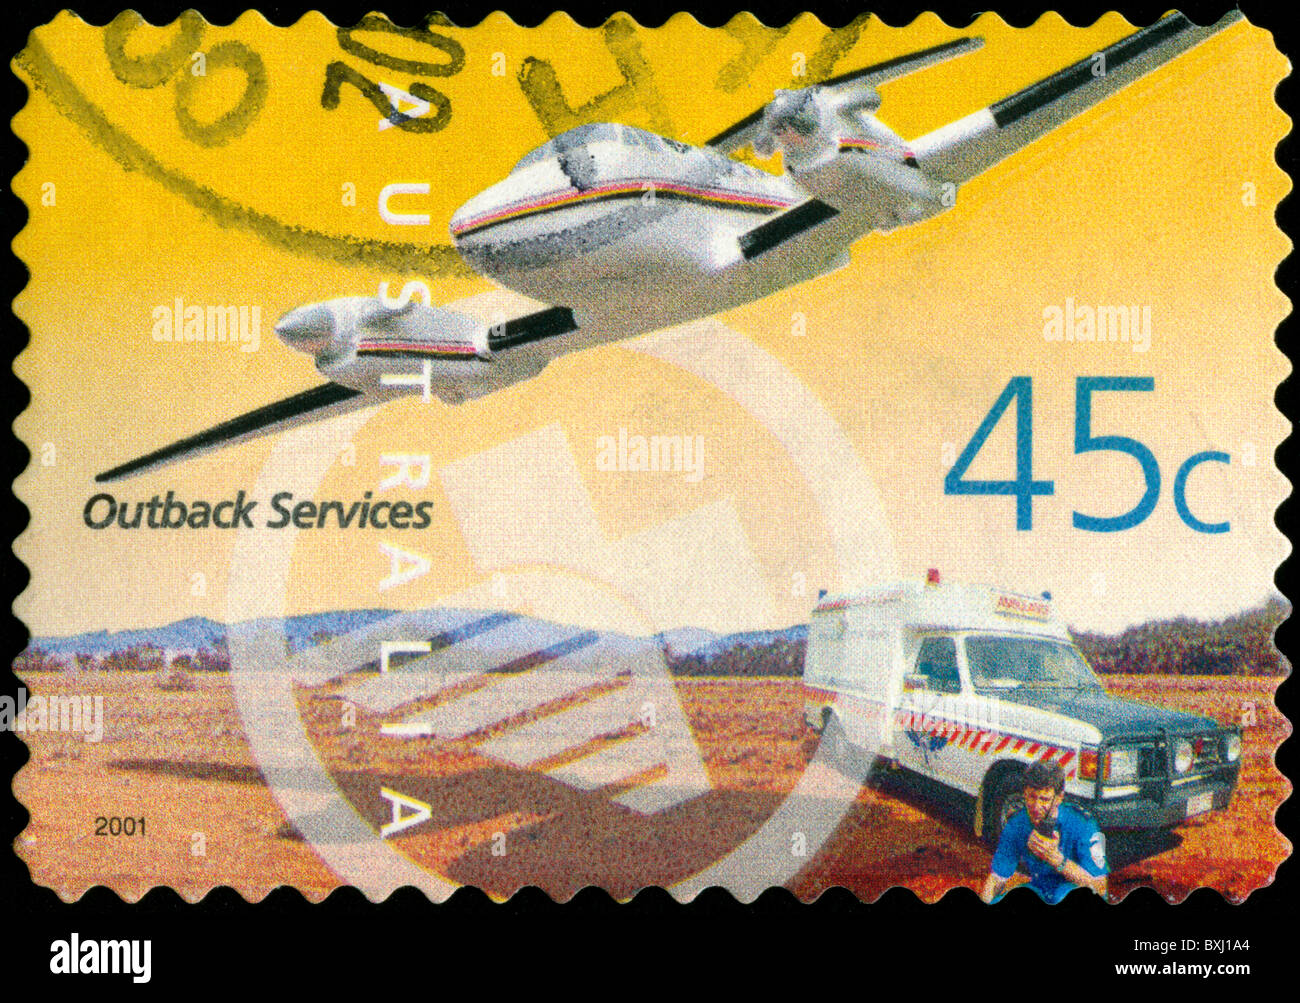 Stamp from Australia depicting Outback Services - Stock Image